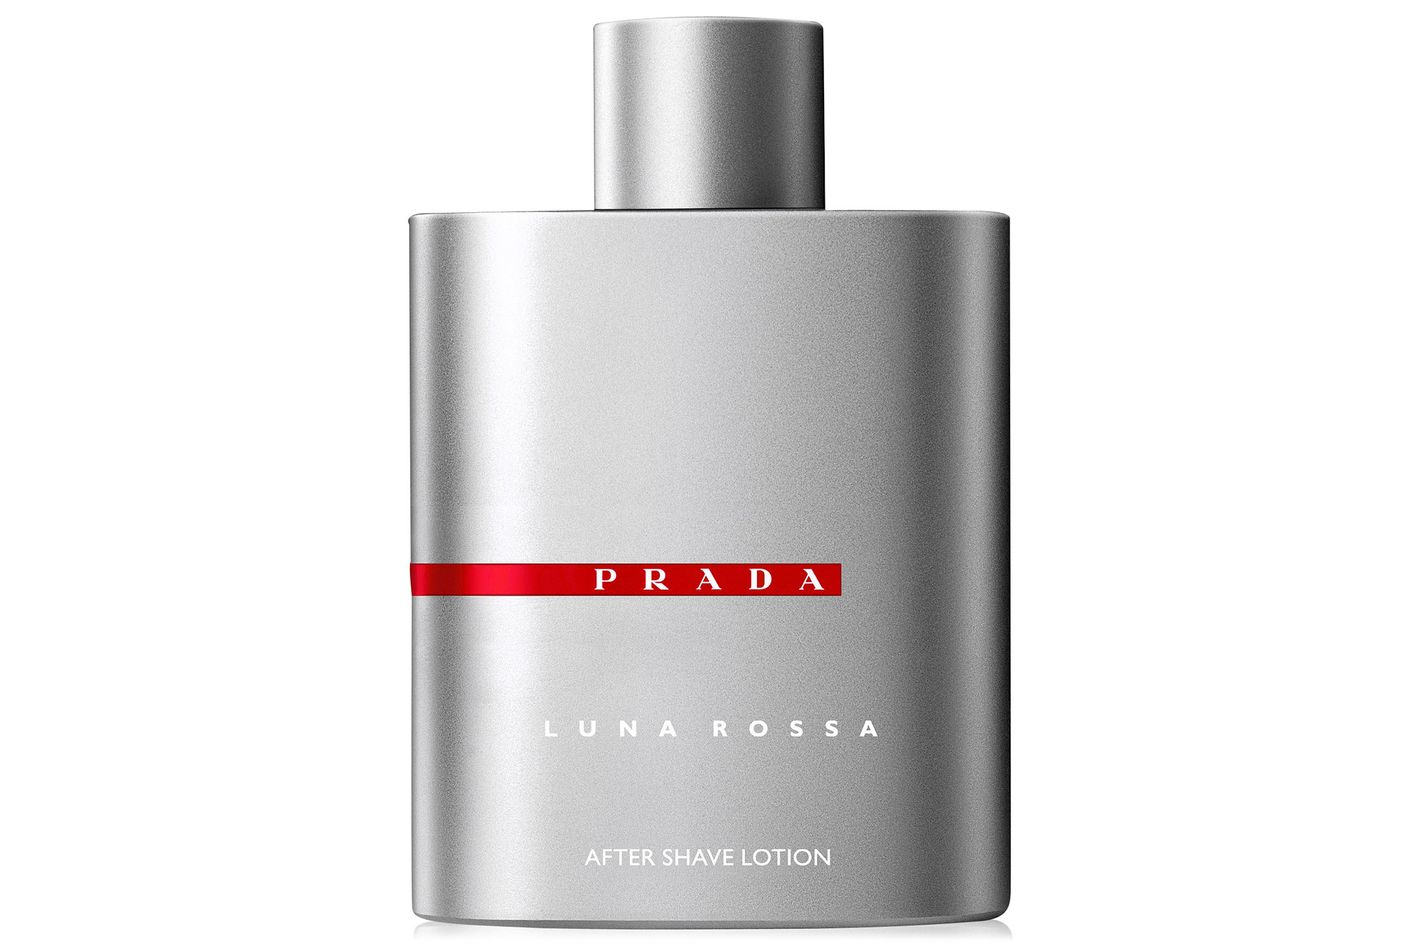 Prada Luna Rossa After Shave Lotion